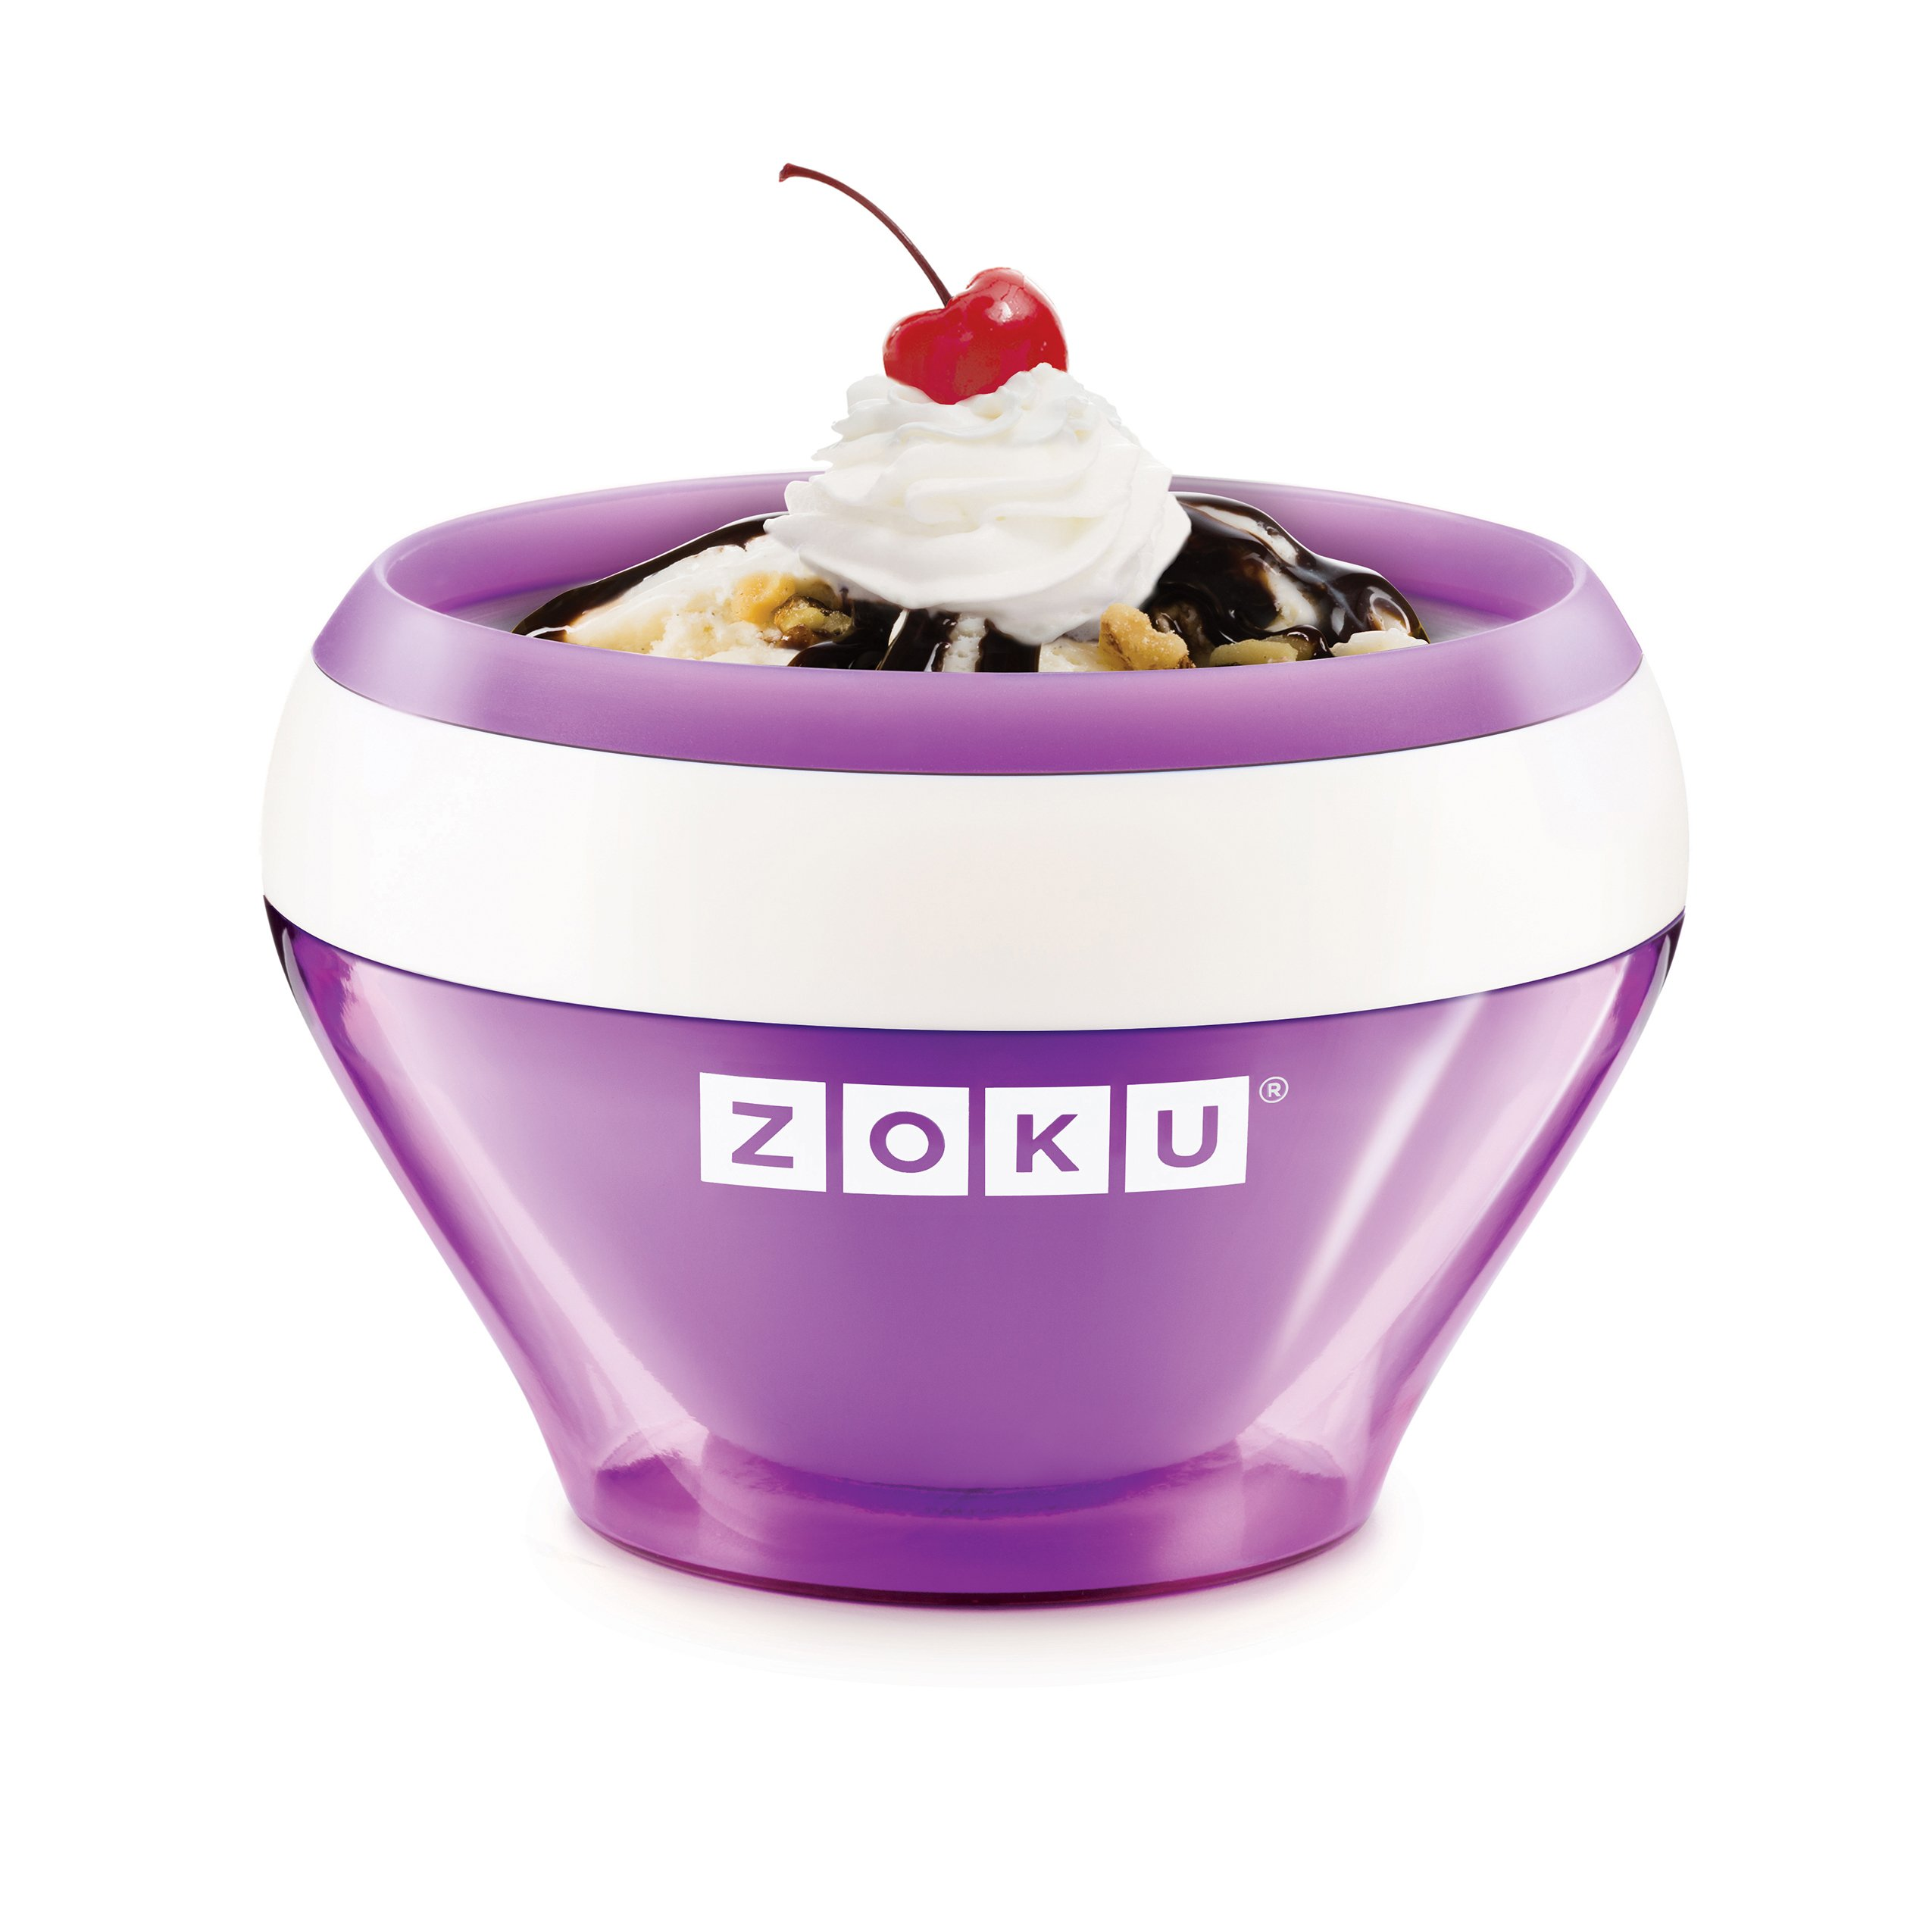 Zoku Ice Cream Maker, Compact Make and Serve Bowl with Stainless Steel Freezer Core Creates Soft Serve, Frozen Yogurt, Ice Cream and More in Minutes, BPA-free, 6 Colors, Purple